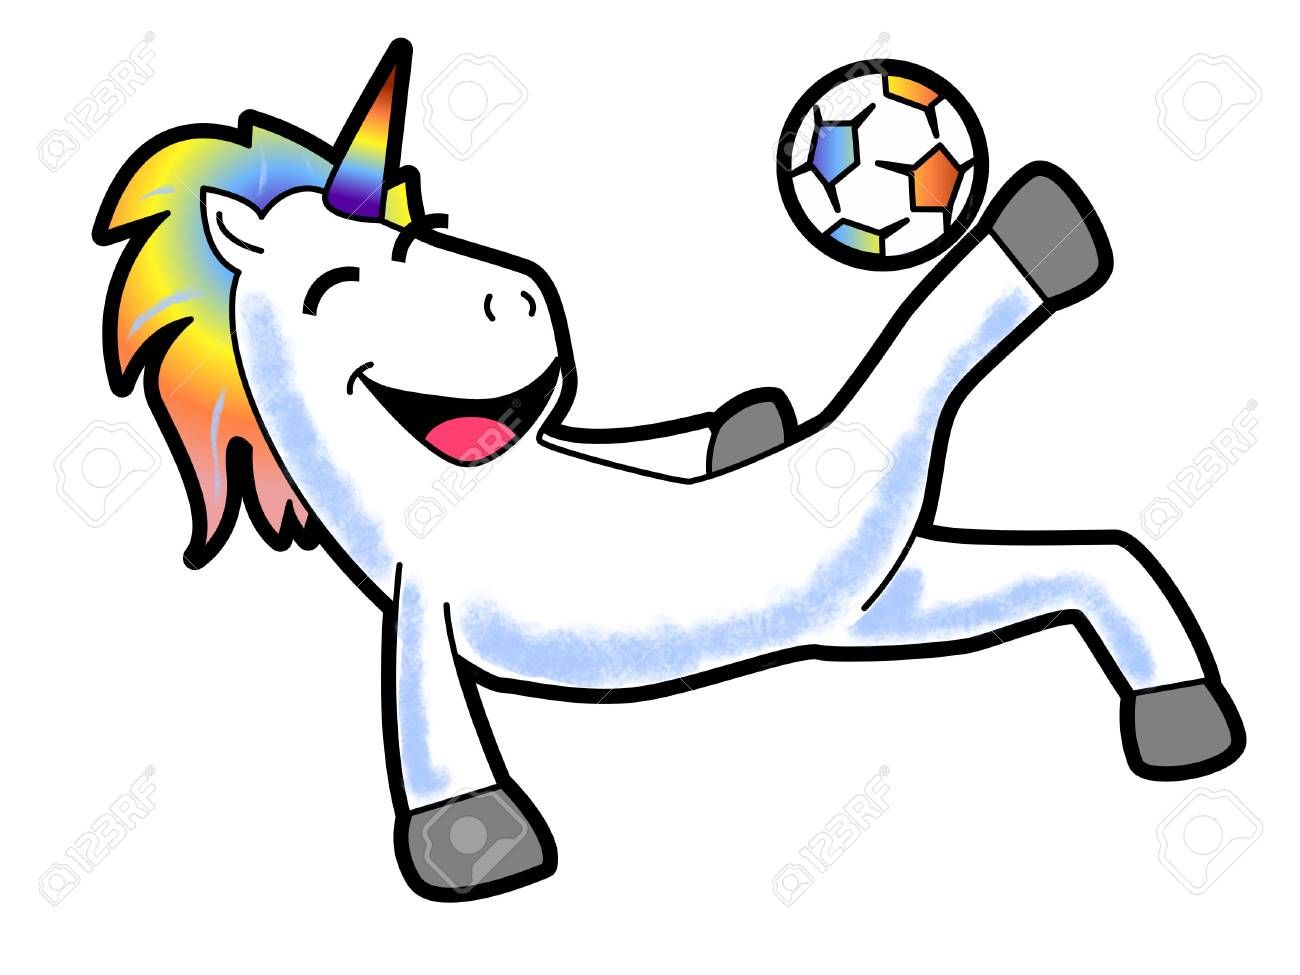 A Cartoon Of A Unicorn Kicking A Soccer Ball Ad Unicorn Cartoon Kicking Ball Soccer Futbol